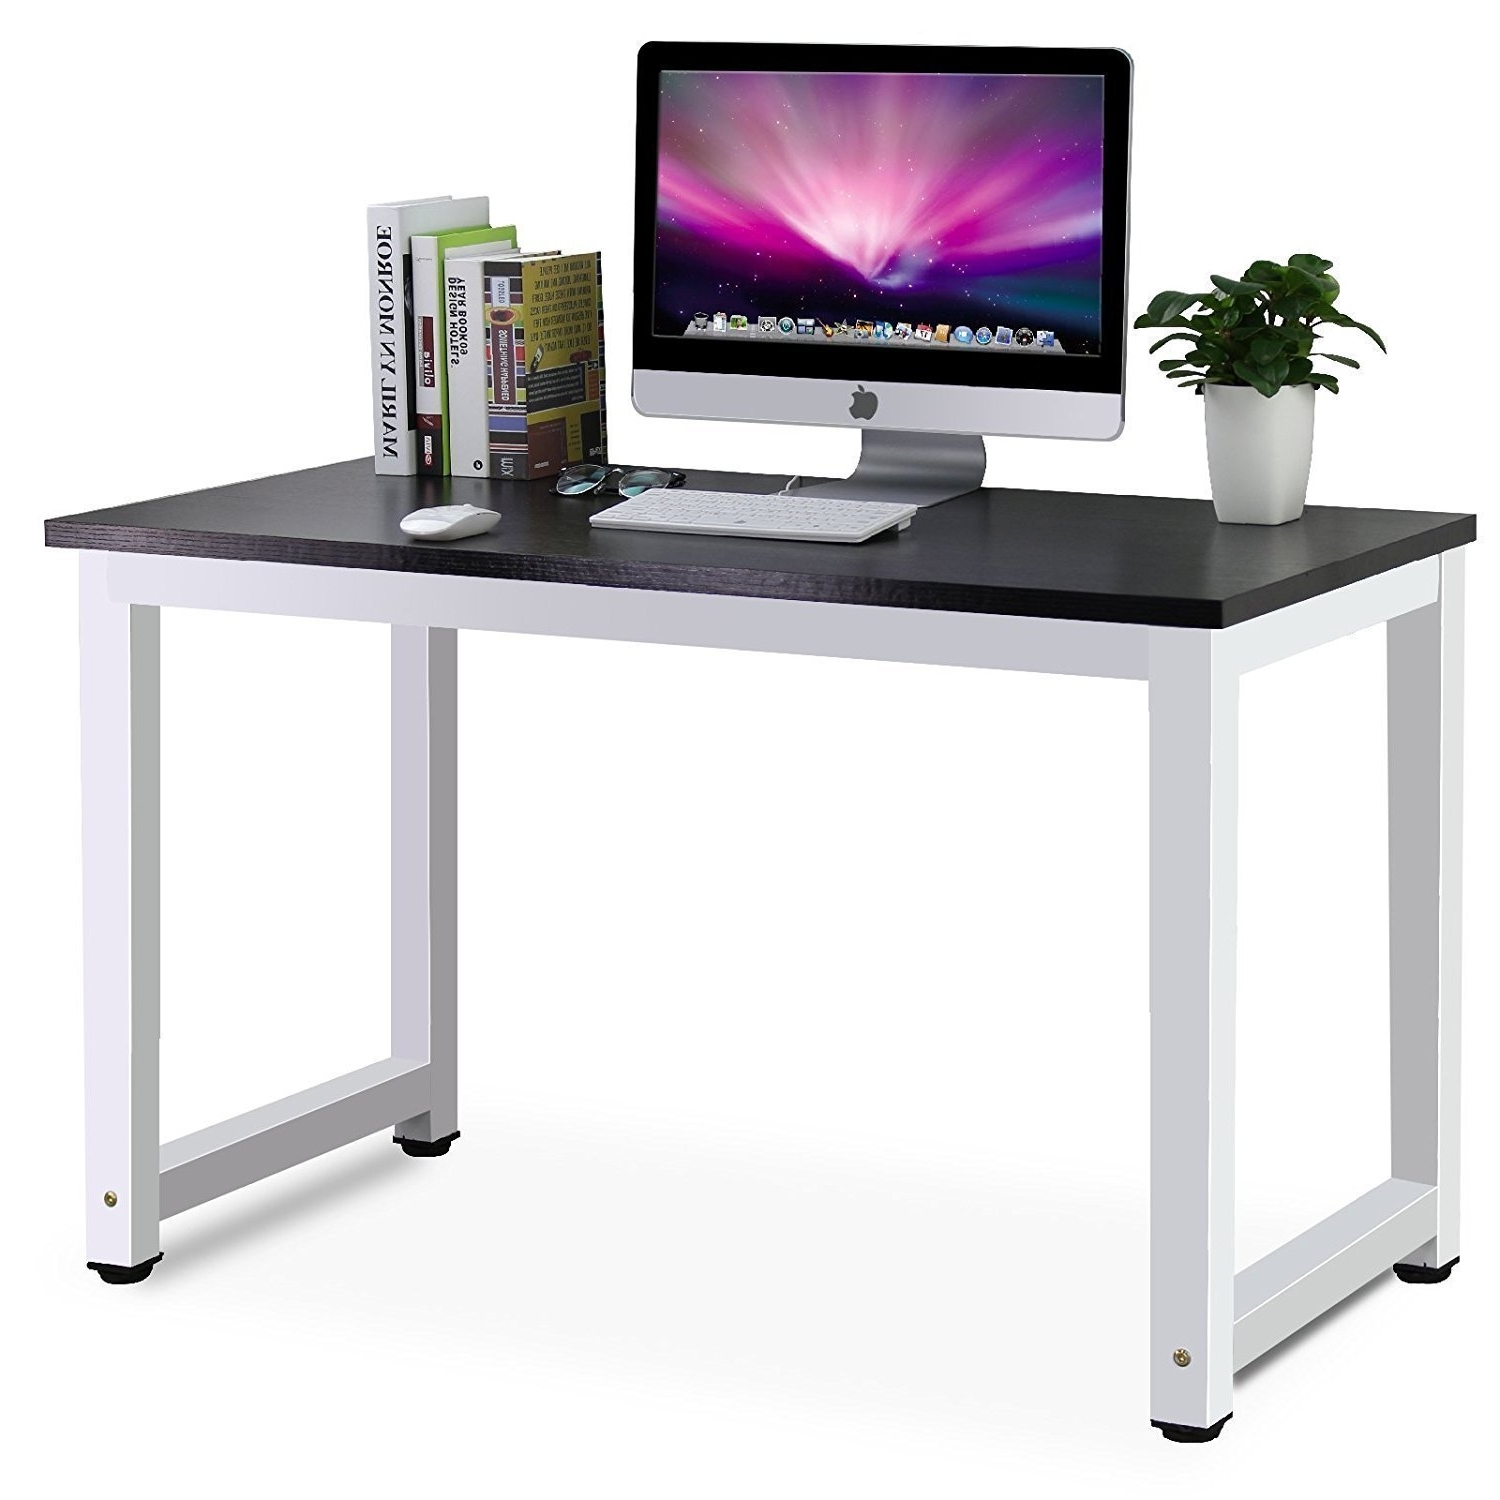 photos of computer desks and workstations showing 5 of 20 photos